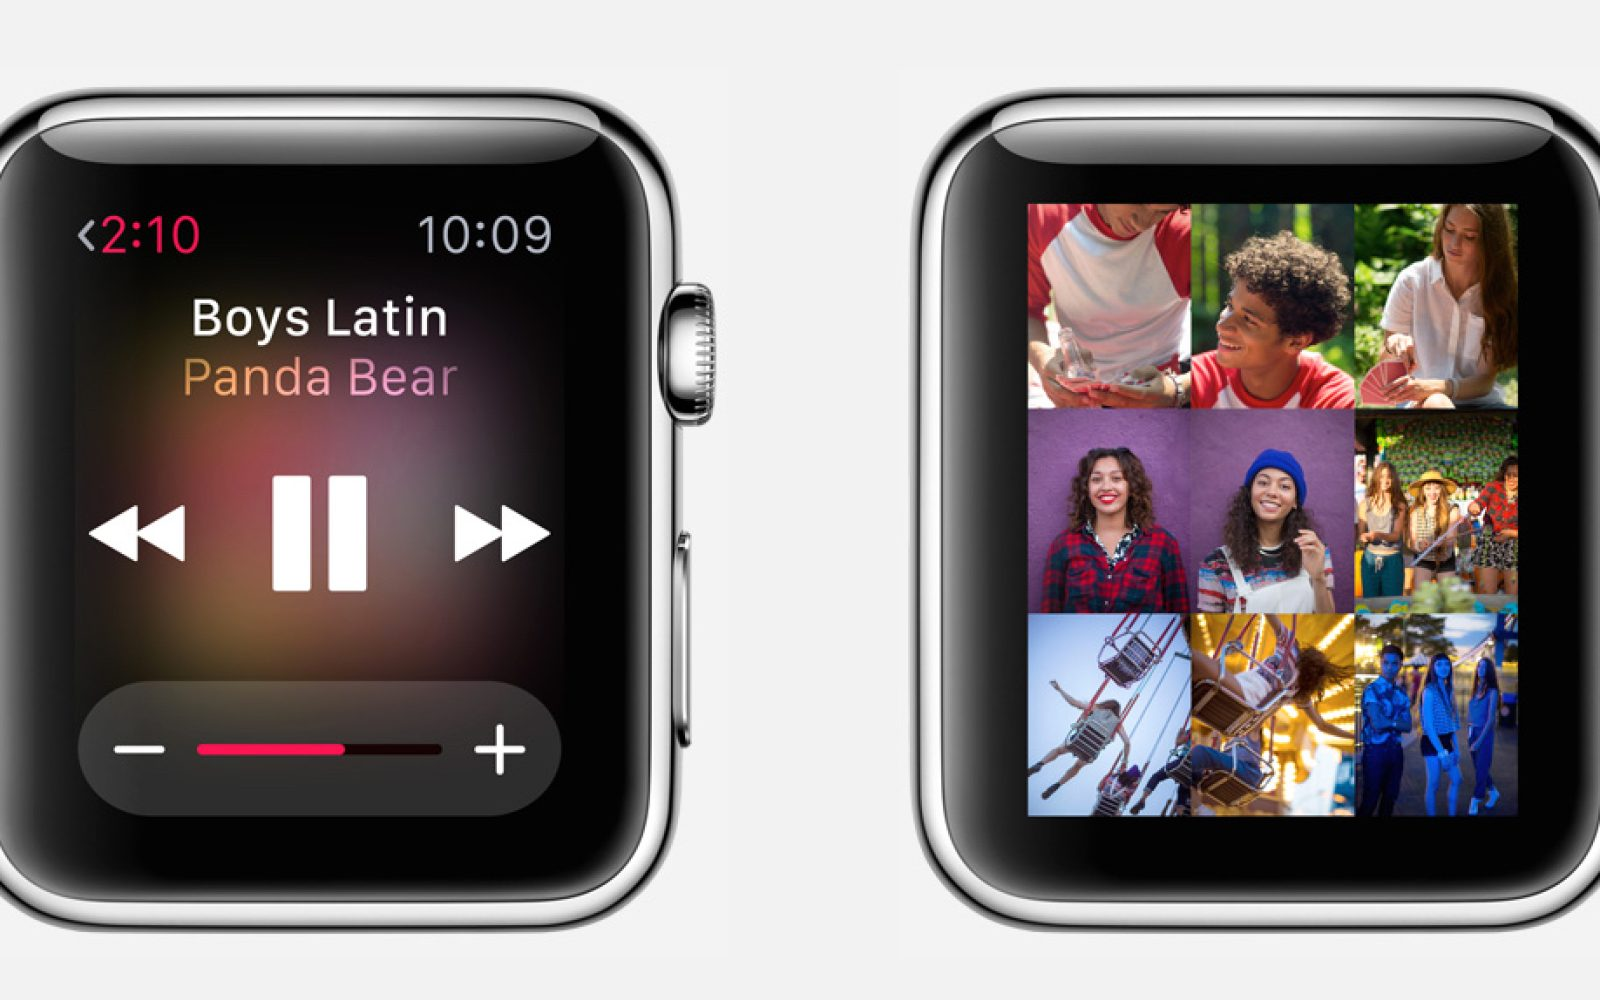 Apple Watch Includes 8 GB Of Storage Allows 2 Music And 75 MB Photos